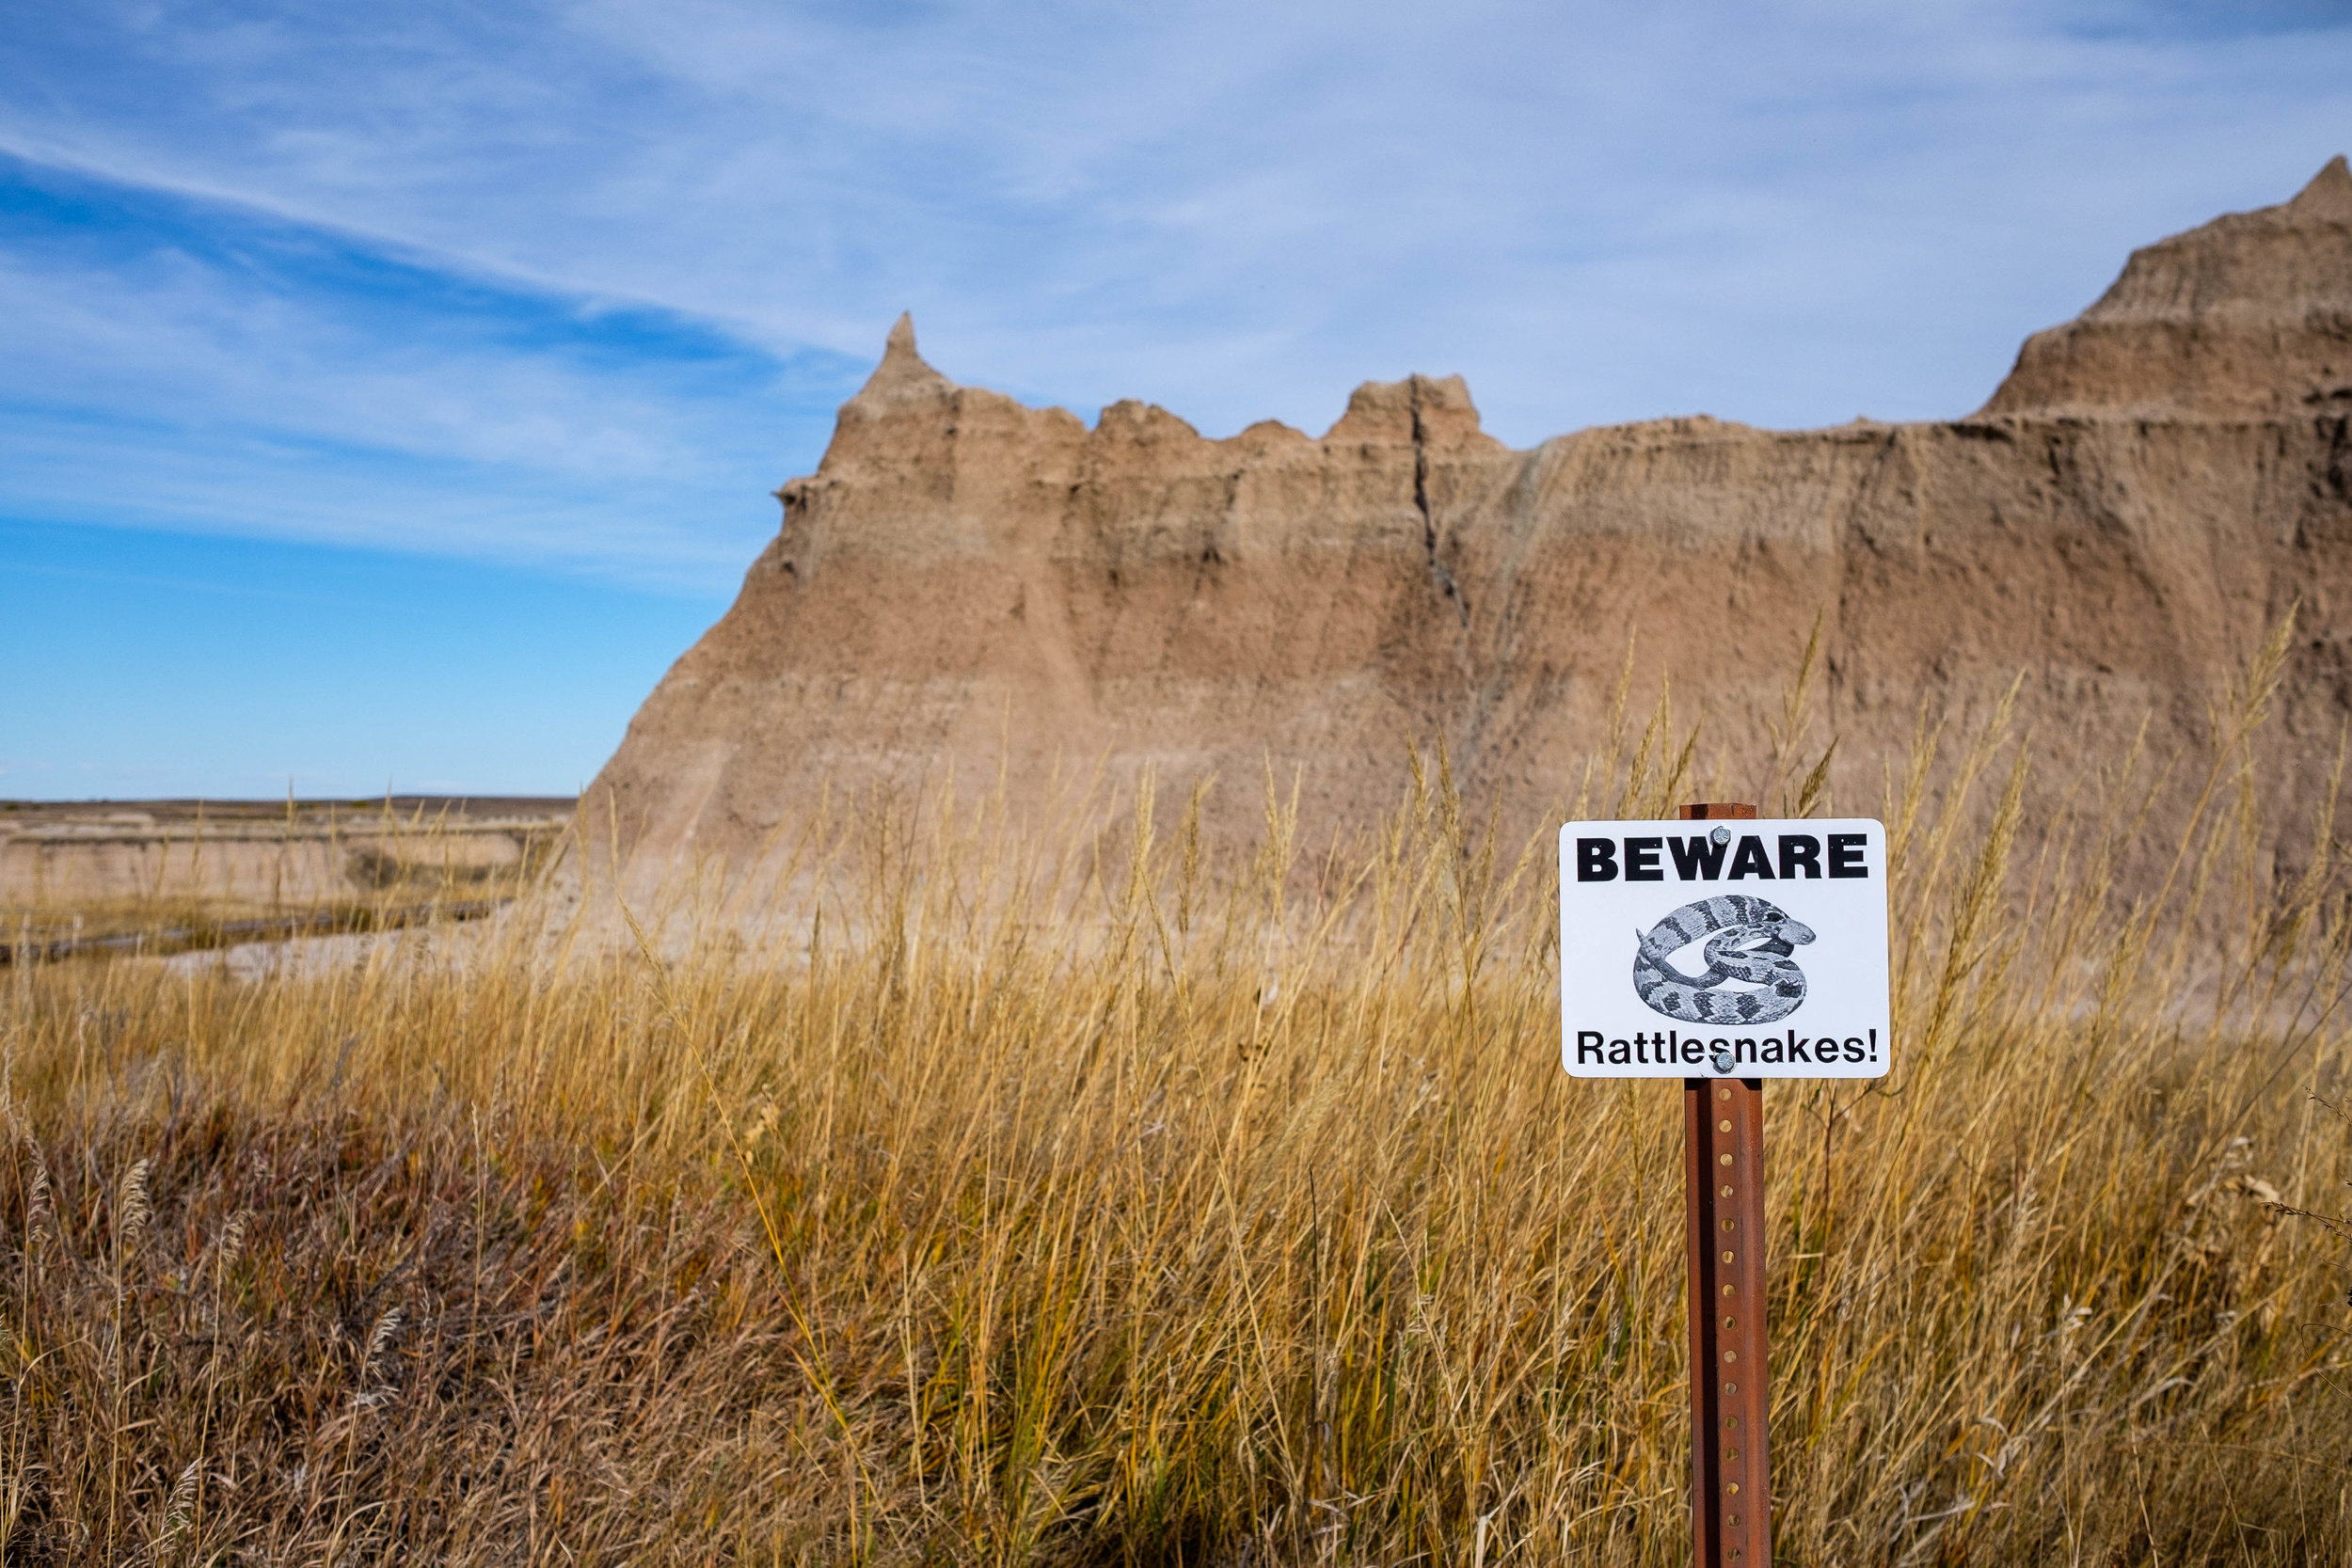 Again with the snakes! Badlands National Park in South Dakota.